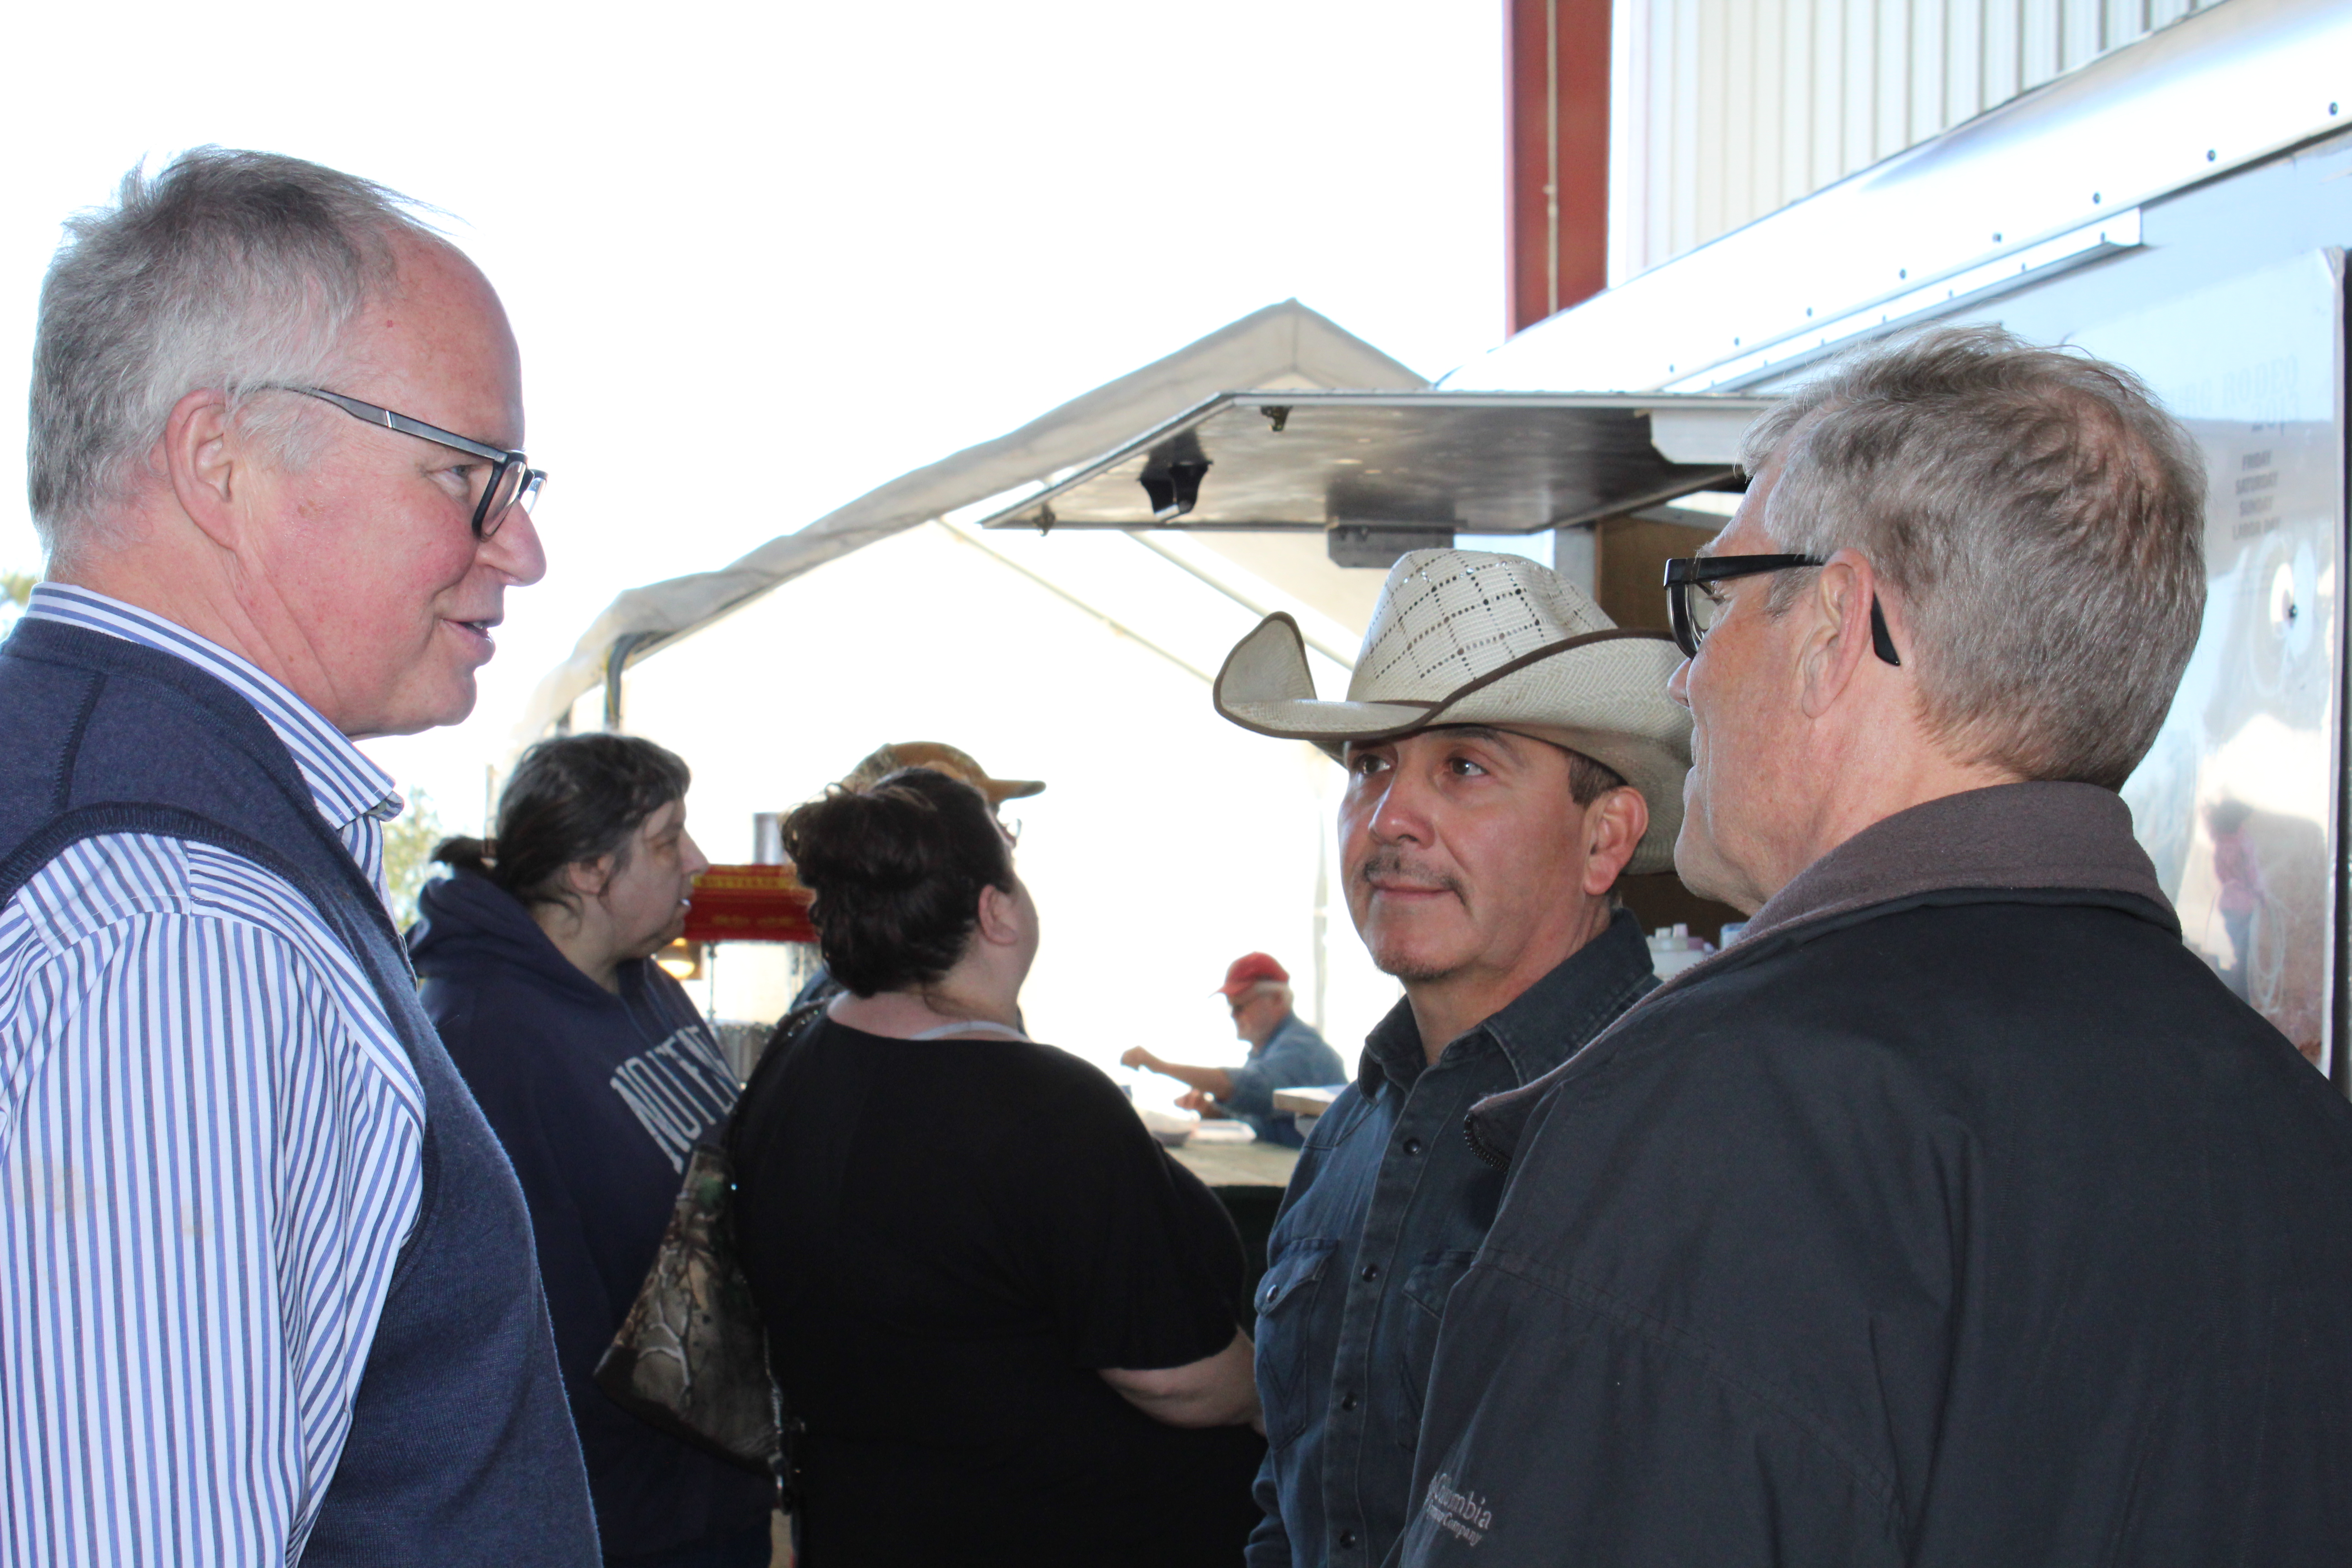 Goldendale Chamber of Commerce image 1